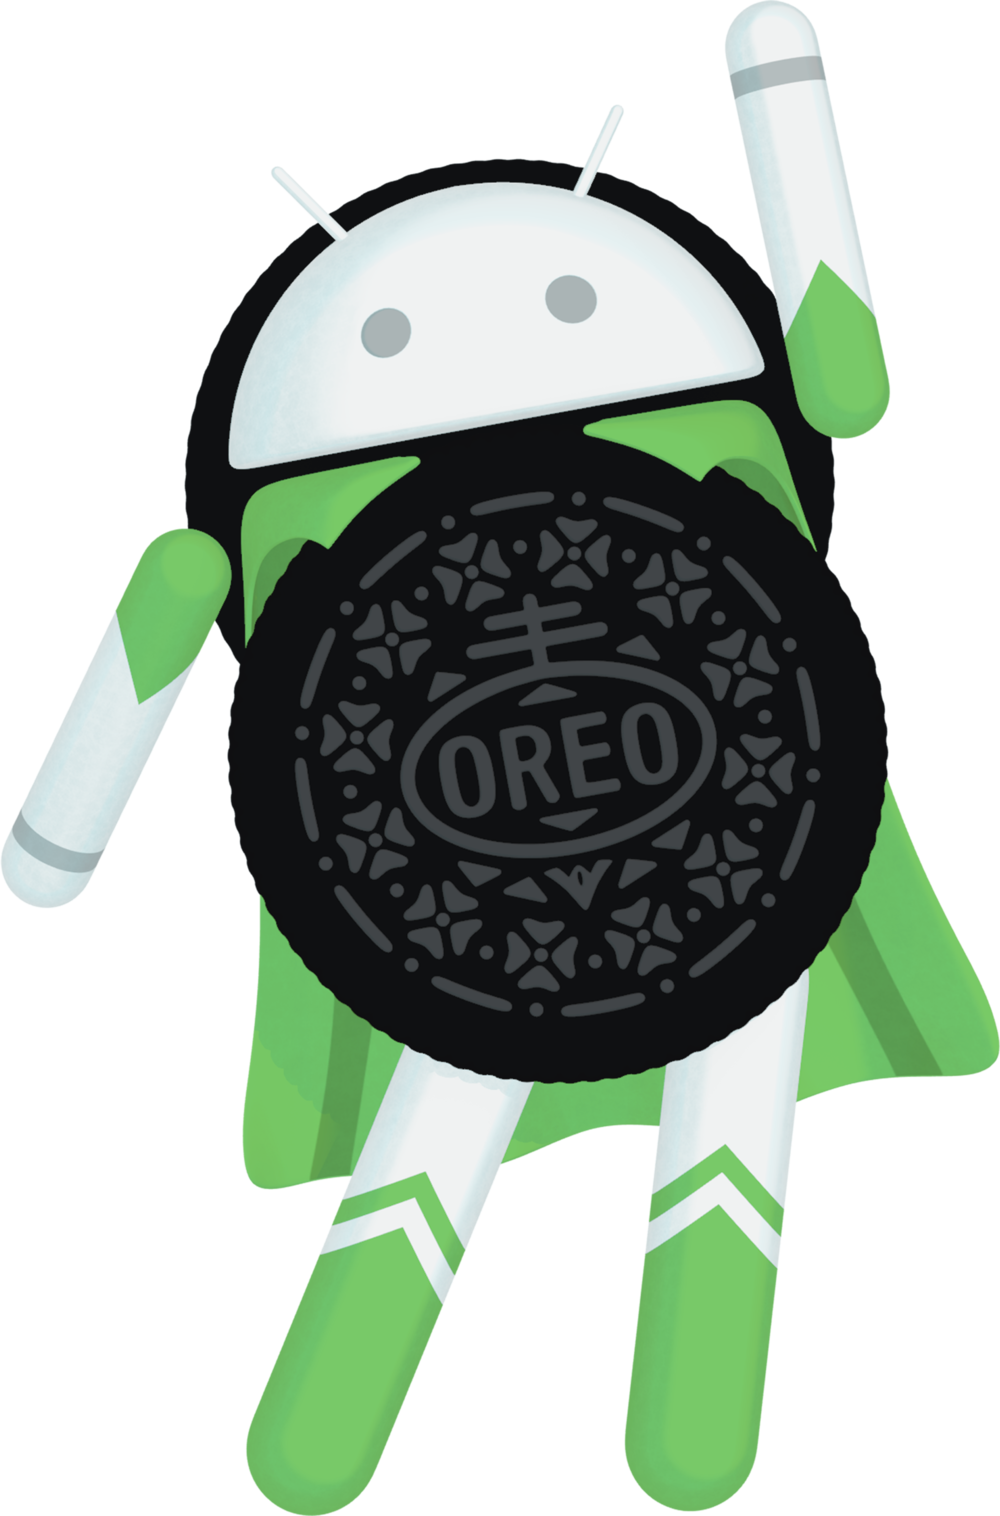 android-oreo.png